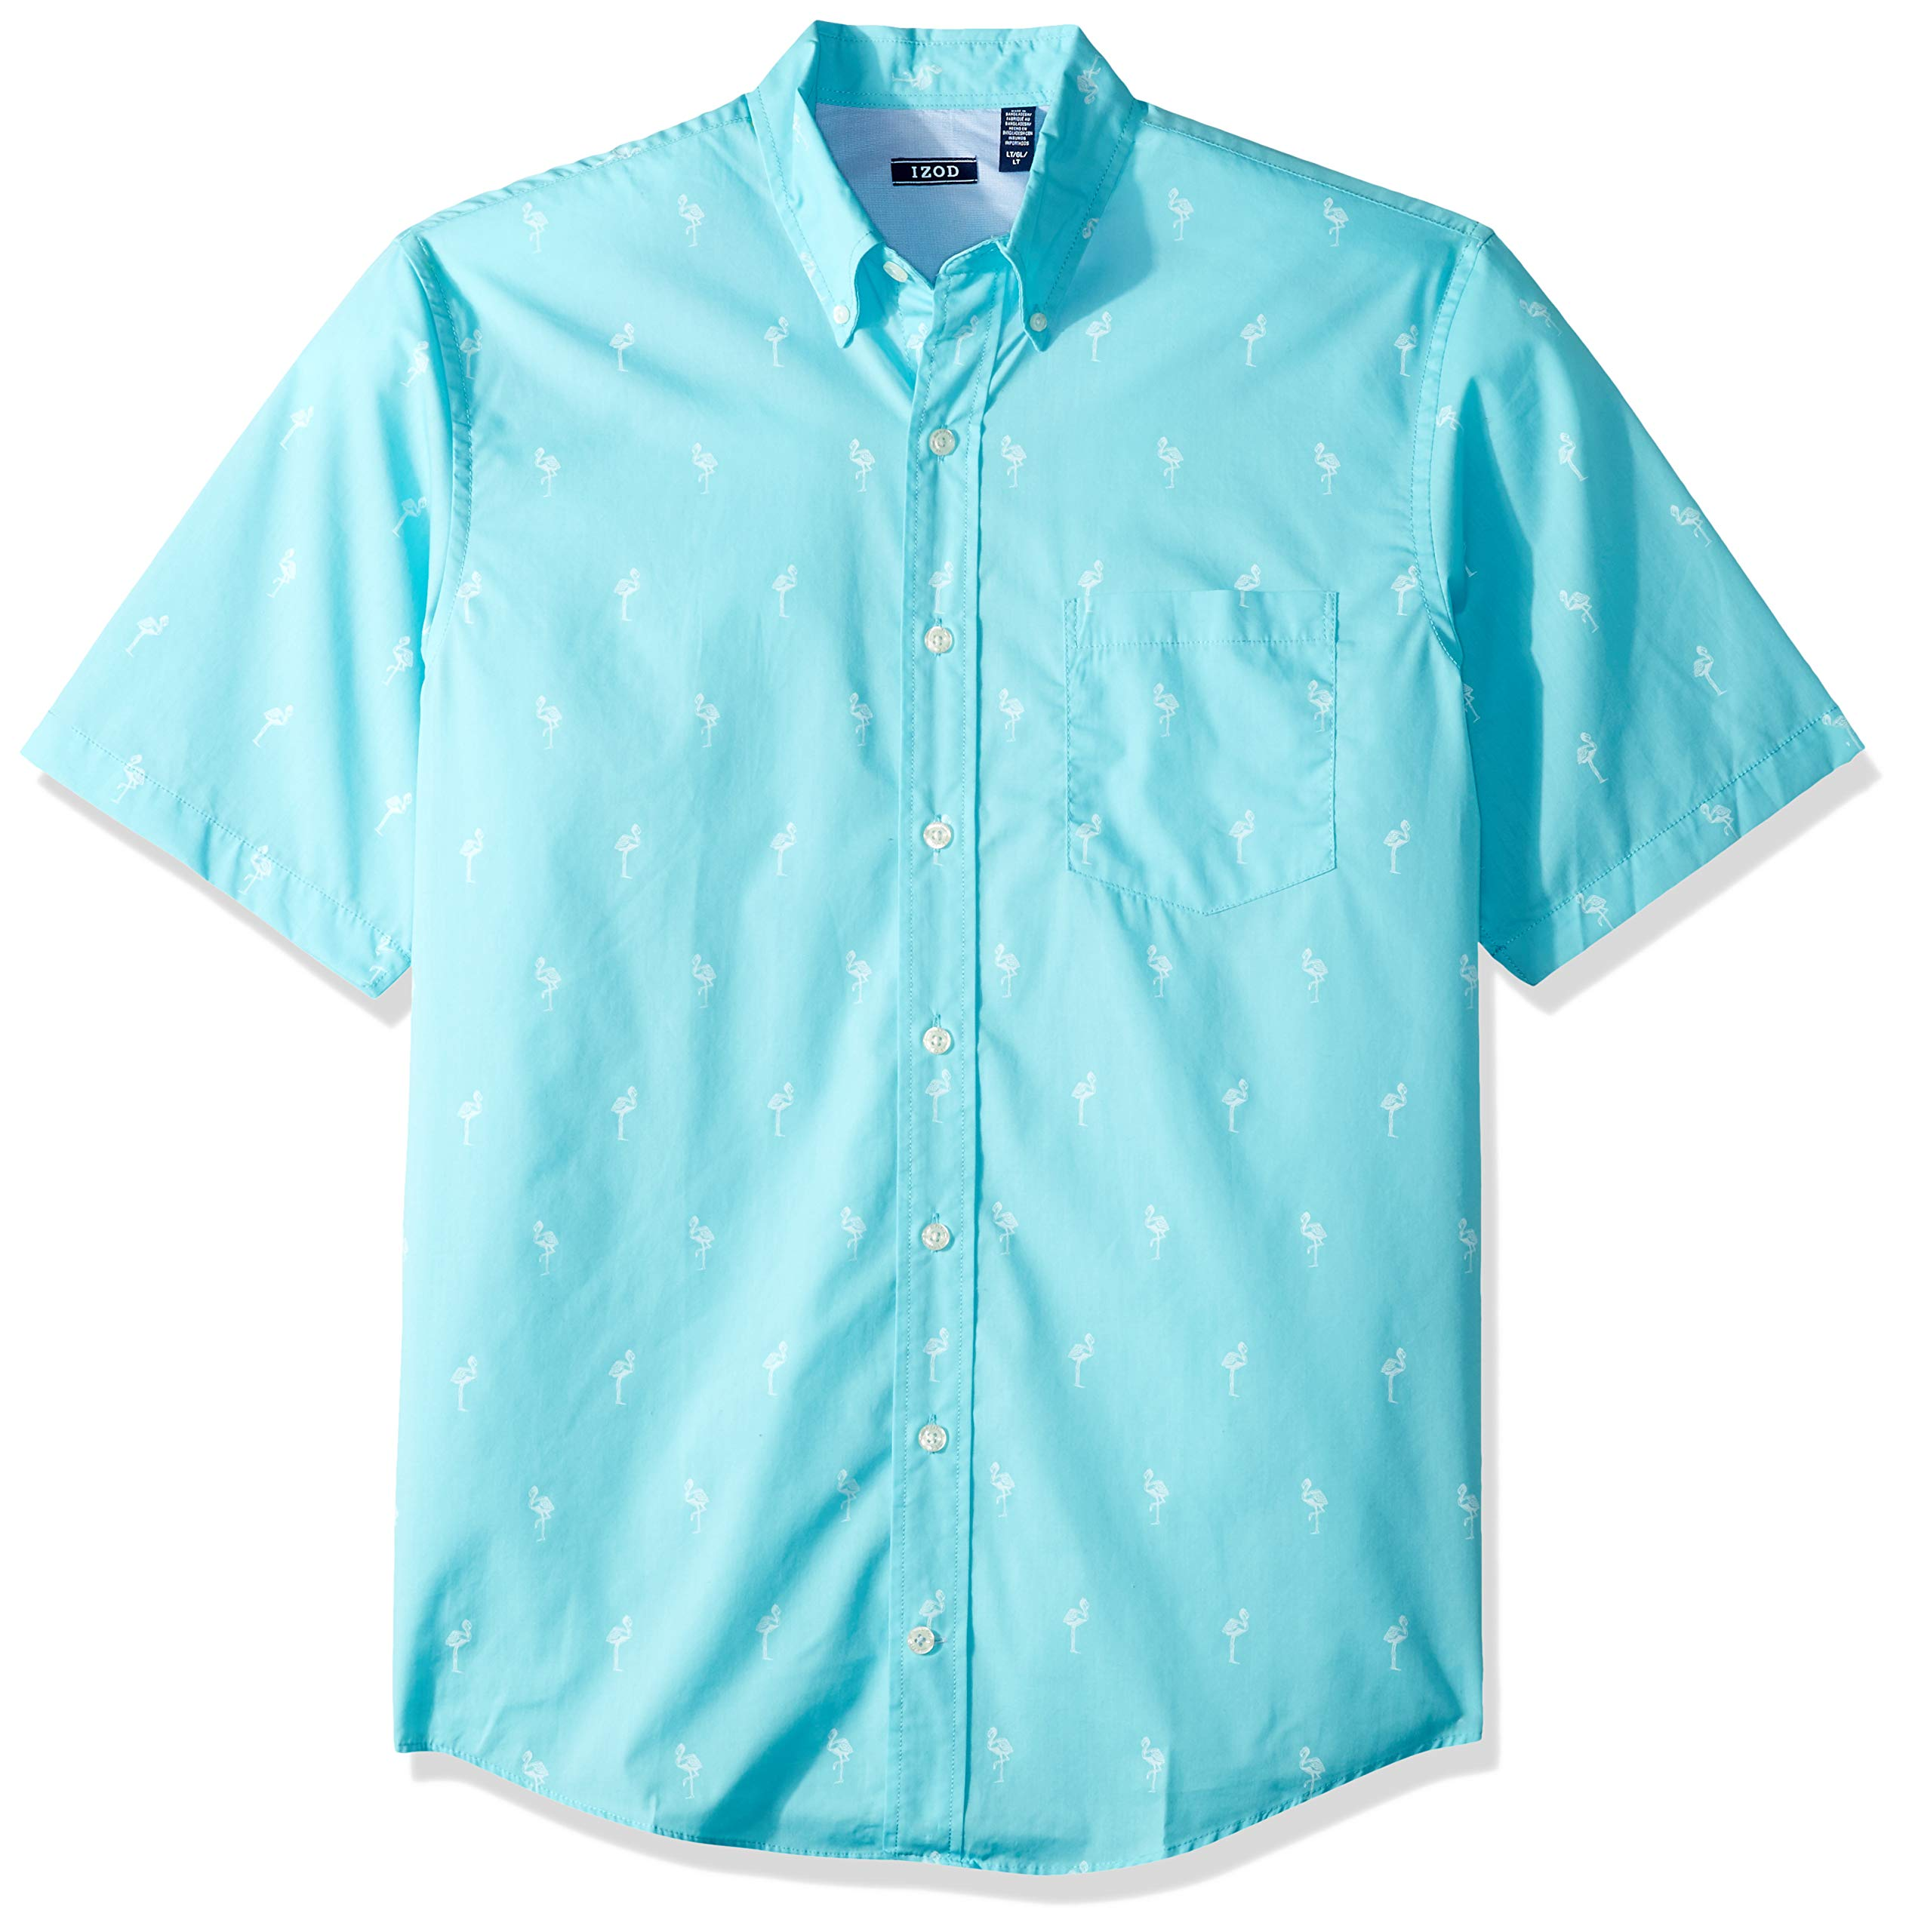 IZOD Men's Big and Tall Breeze Short Sleeve Button Down Plaid Shirt, Blue Radiance, 4X-Large